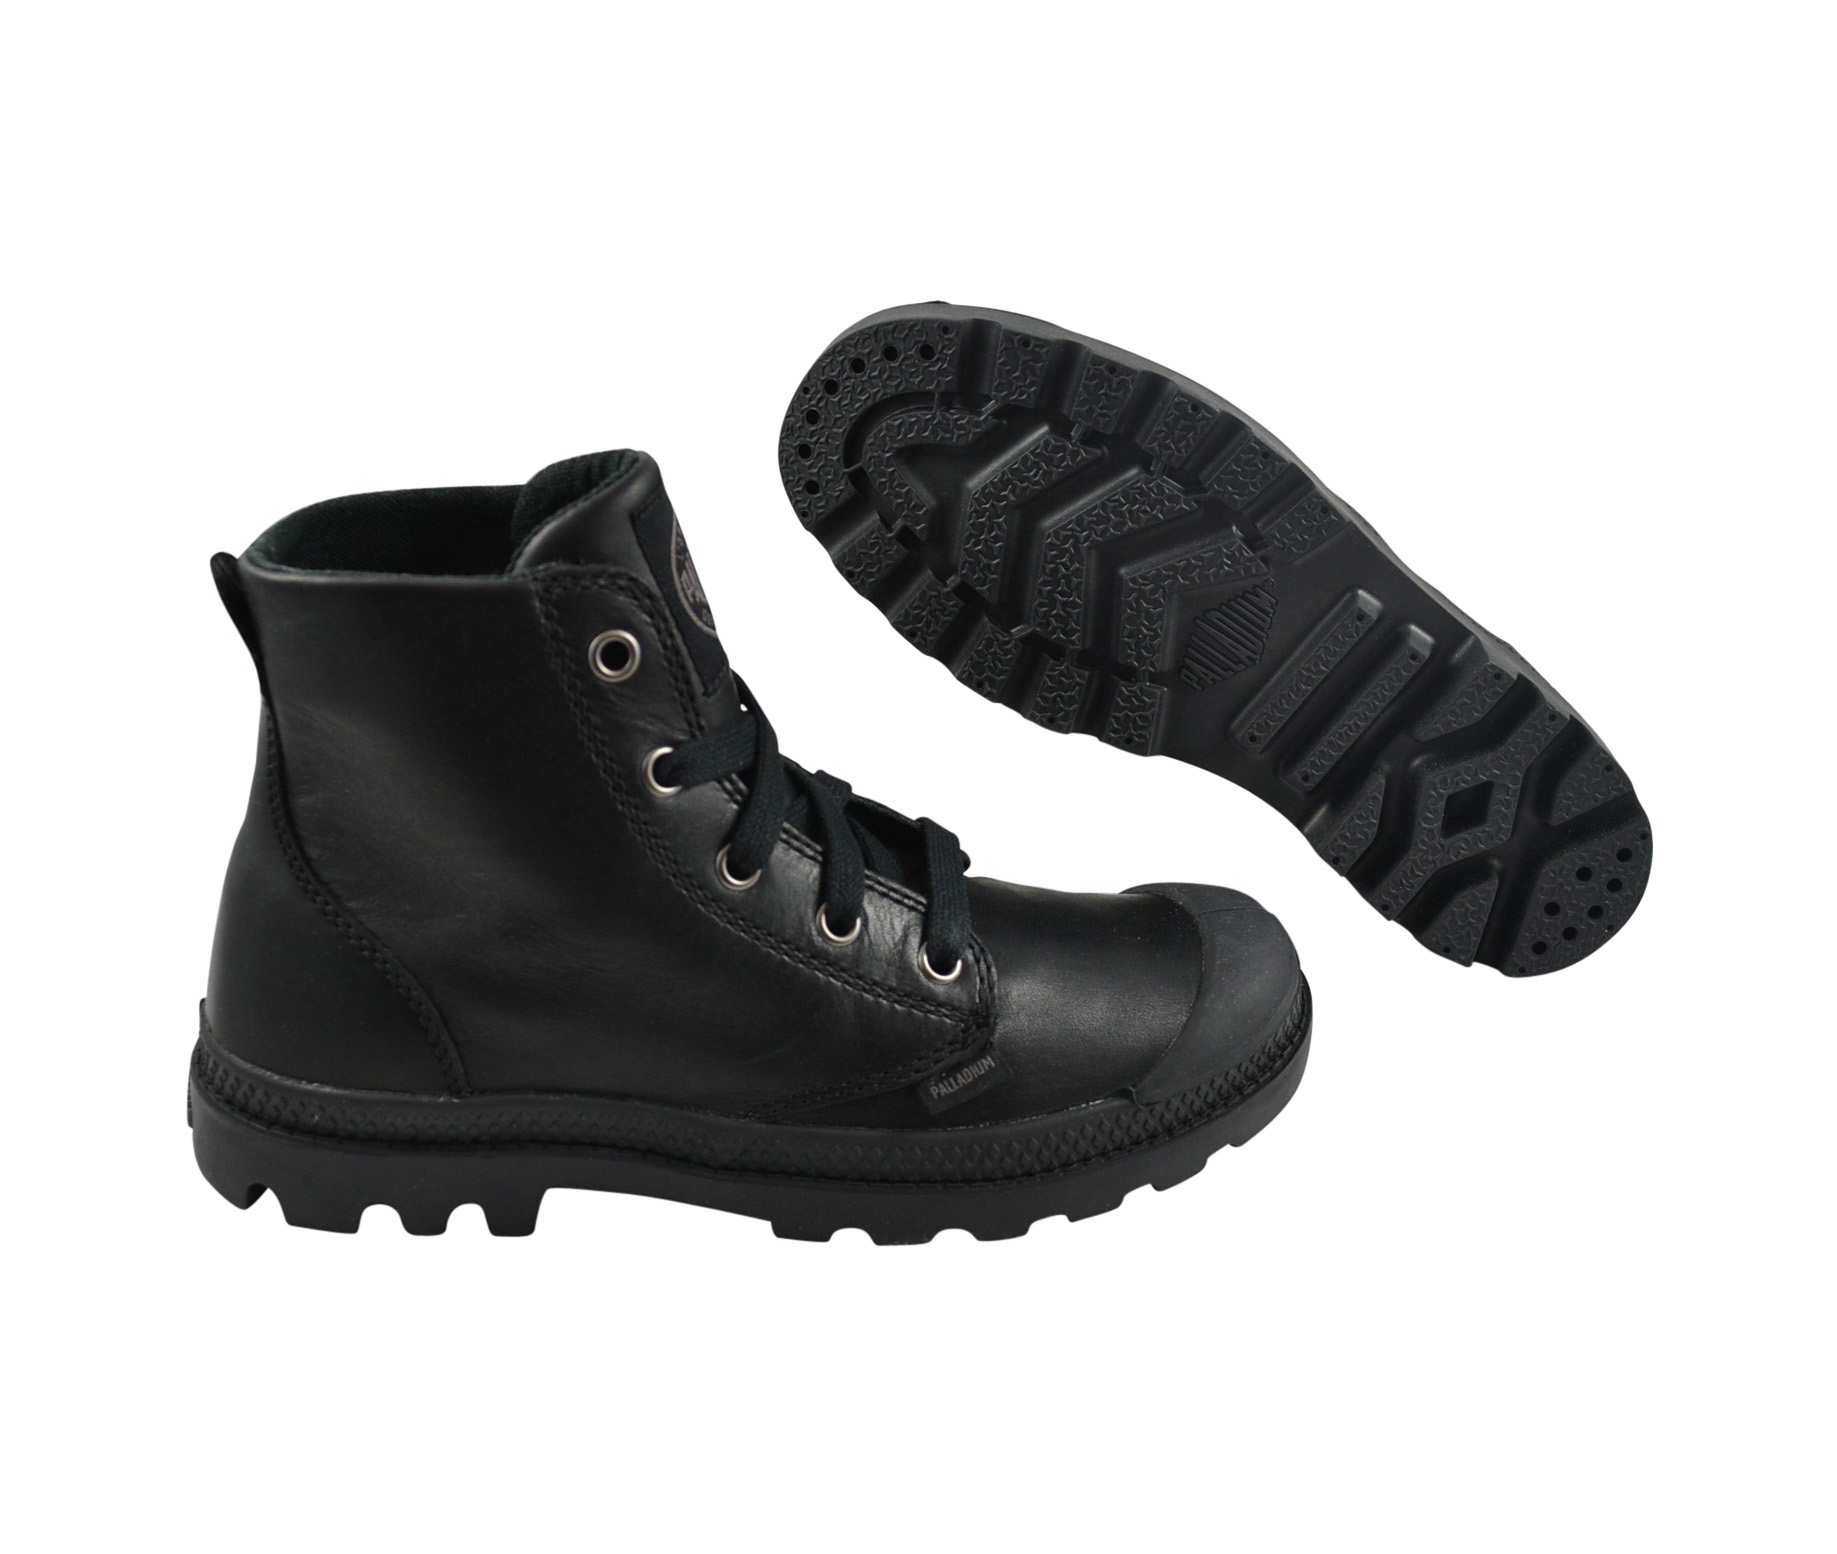 palladium pampa hi leather black schuhe sneaker schwarz leder ebay. Black Bedroom Furniture Sets. Home Design Ideas